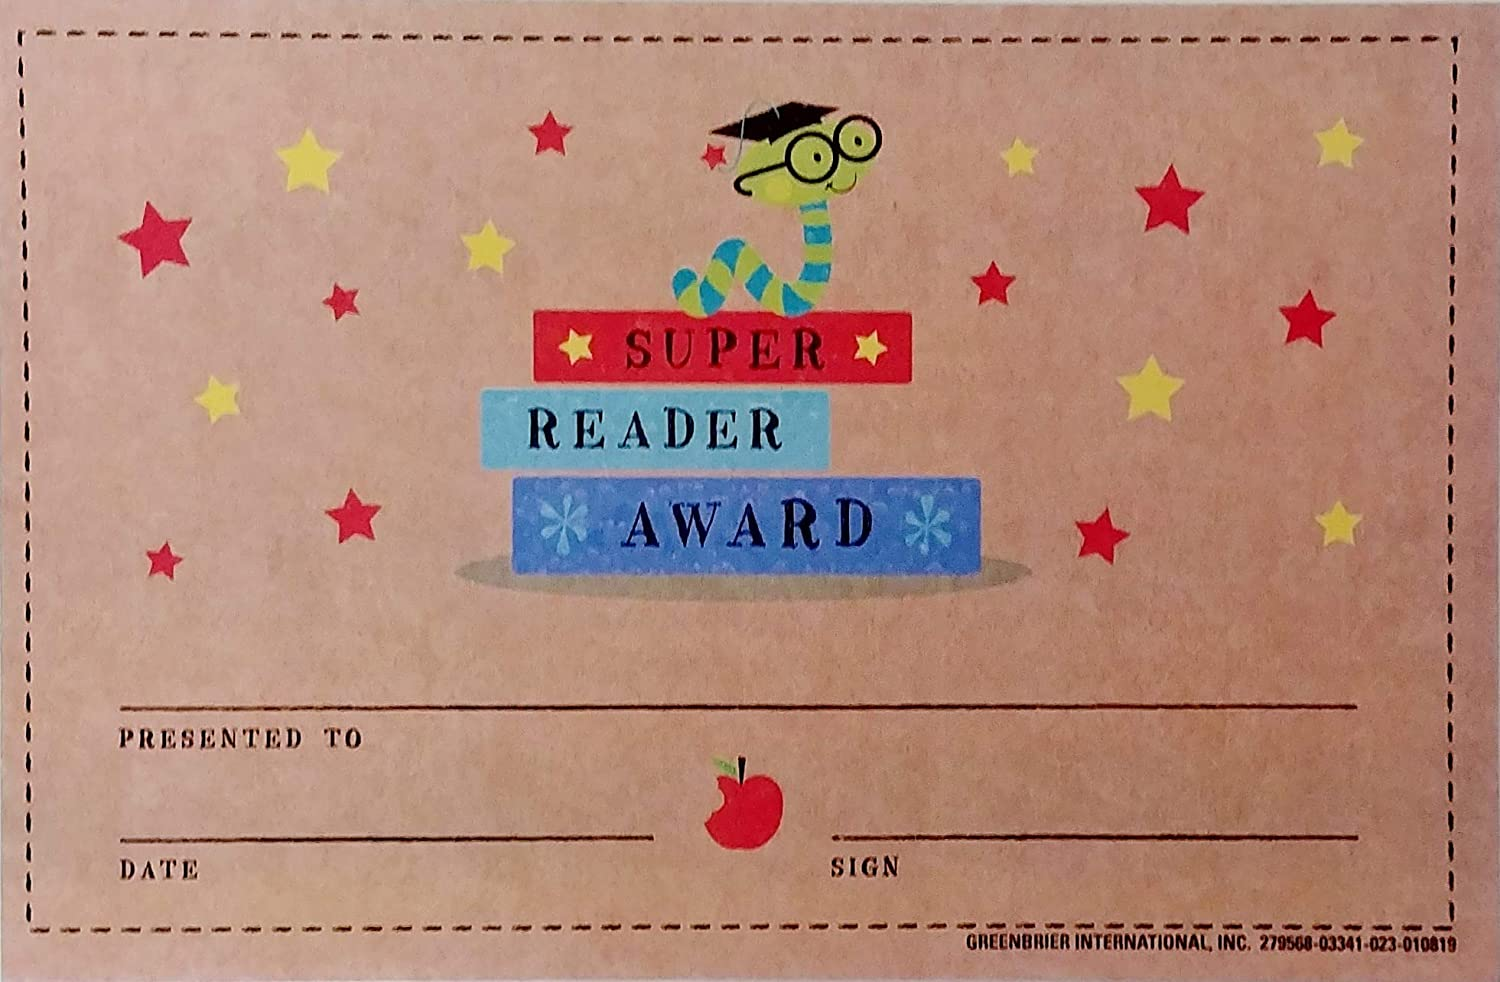 Pack Set of Super Reader Award with Book Worm - Personalize Classroom Recognition Reward System for Kid Child School Students Teacher Homeschool - Award Incentive Certificate